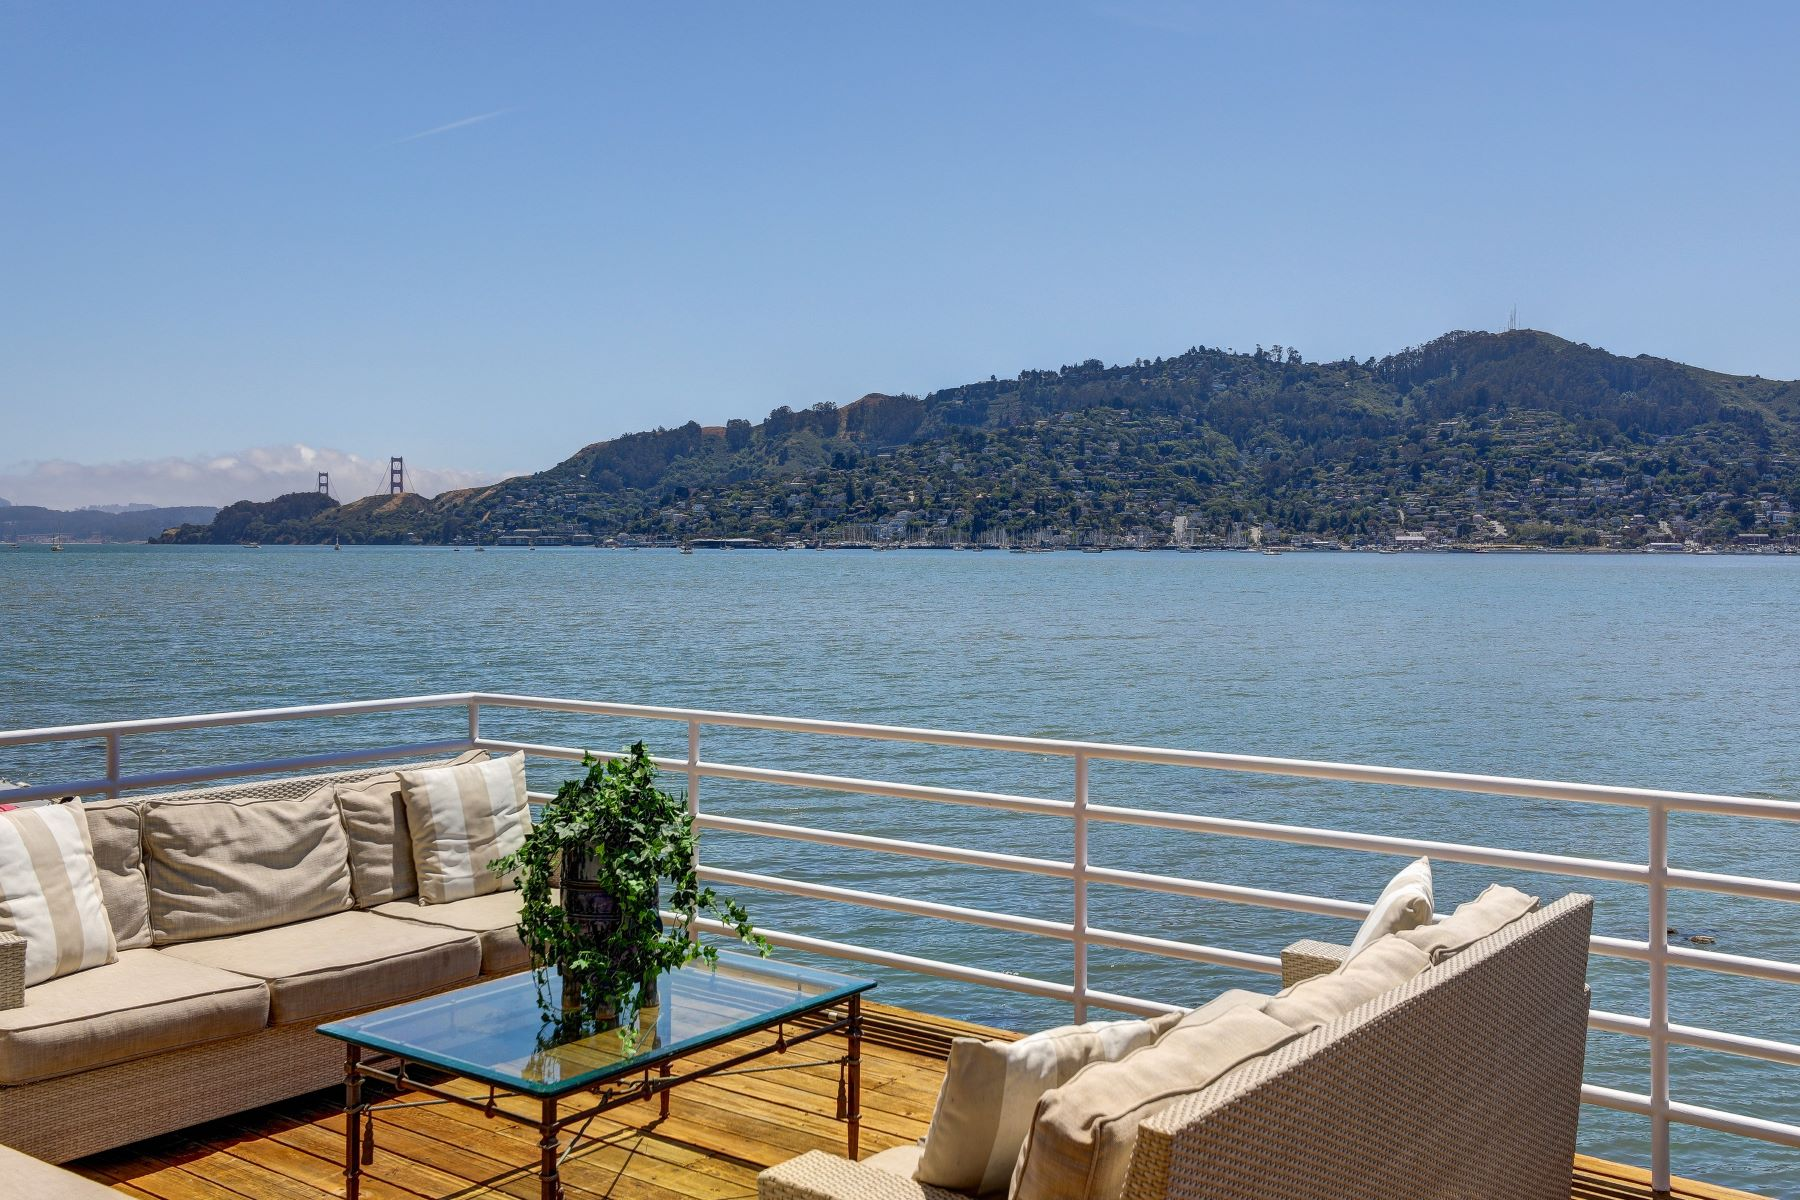 Property for Sale at Coveted Belvedere Waterfront Home! 55 West Shore Rd Belvedere, California 94920 United States